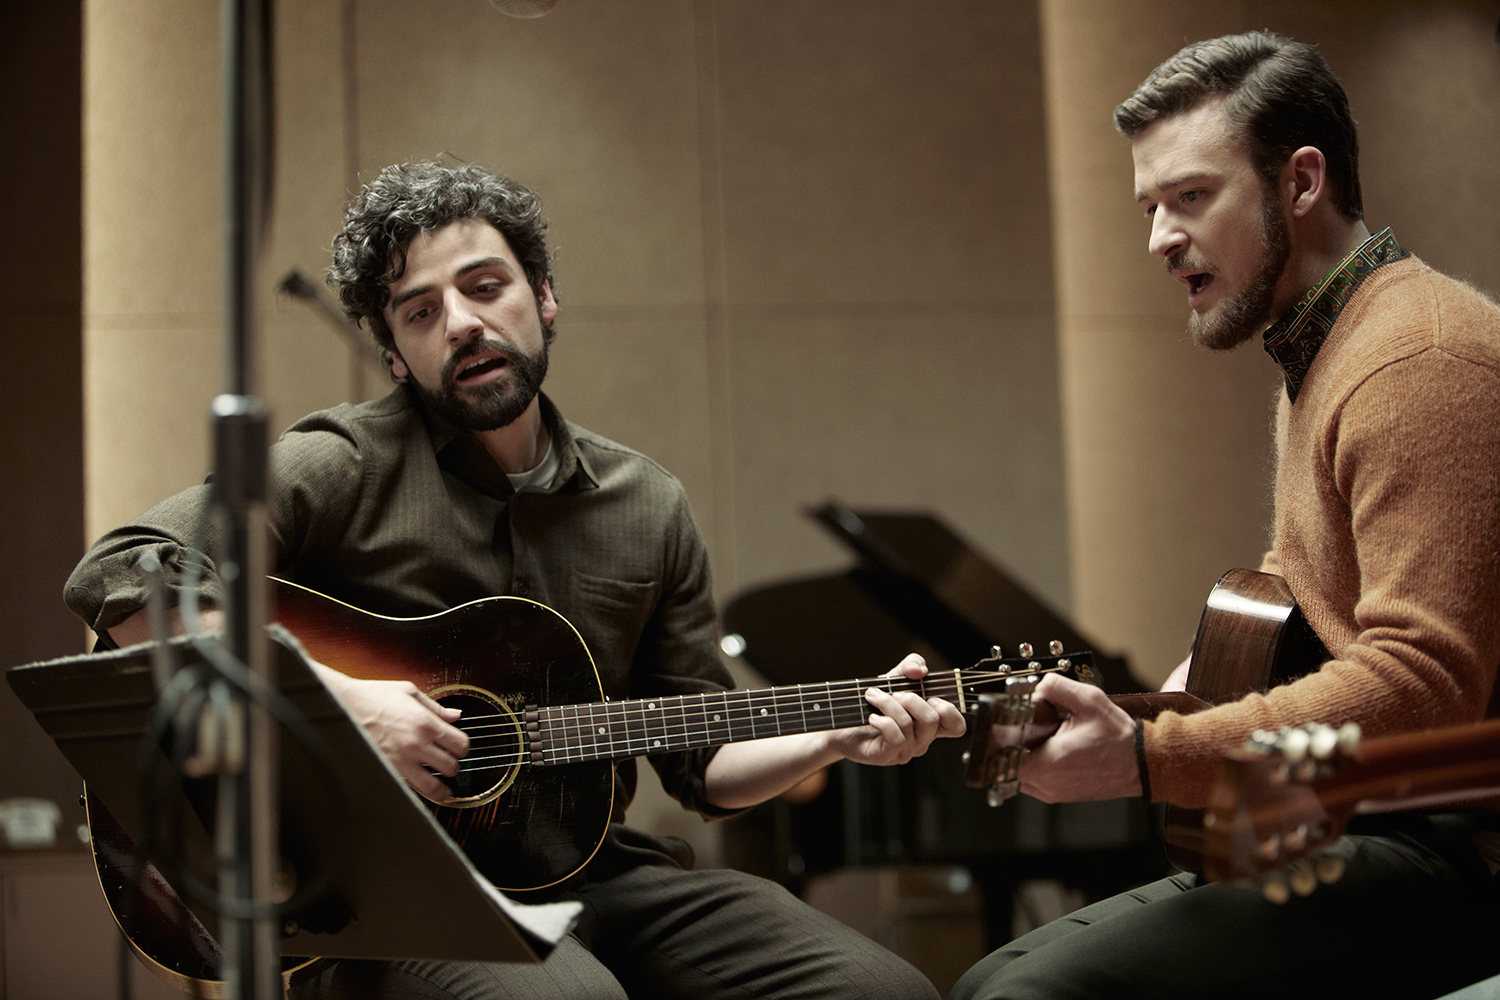 Oscar Isaac and Justin Timberlake in Inside Llewyn Davis. (Photo: Alison Rosa/Long Strange Trip LLC)